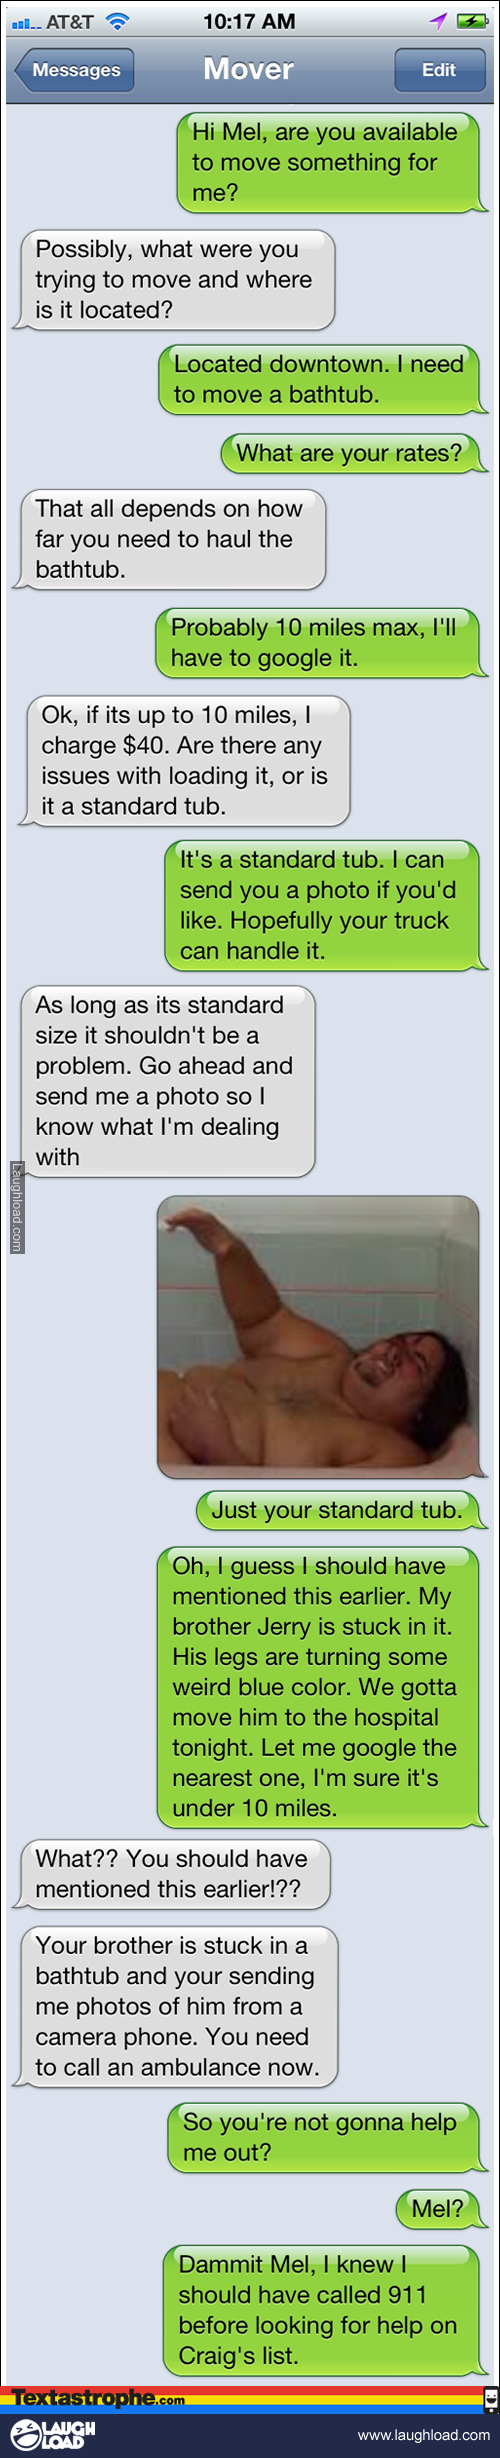 Pin by ☽Lauren Lucidity☾ on Pranks | Funny text messages ... |Funny Texts From Teens